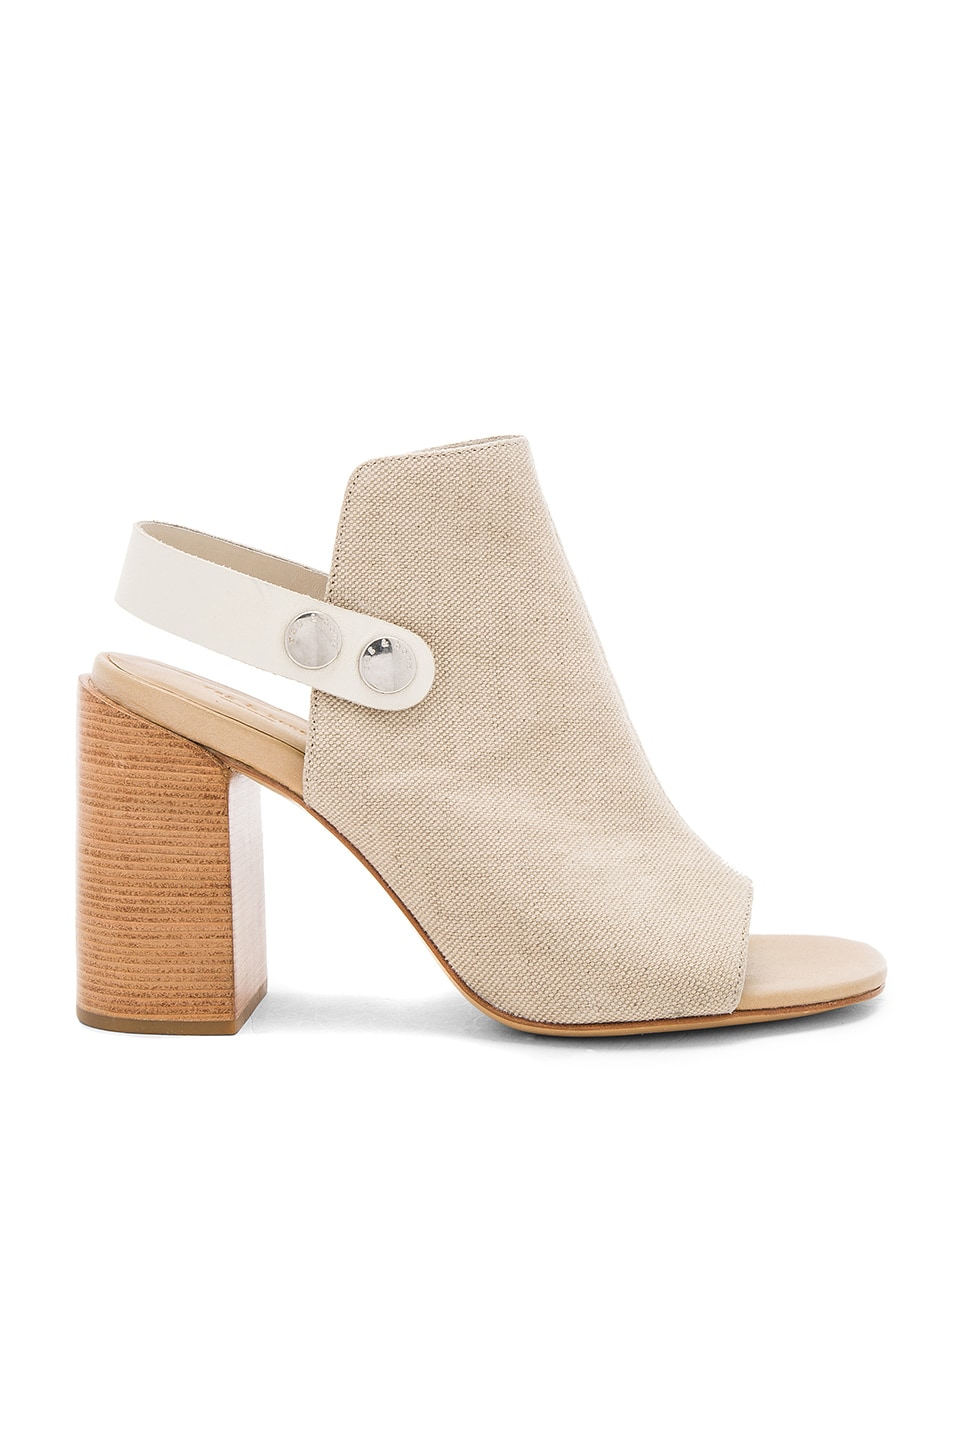 Rag & Bone Leigh Heel in Natural Canvas